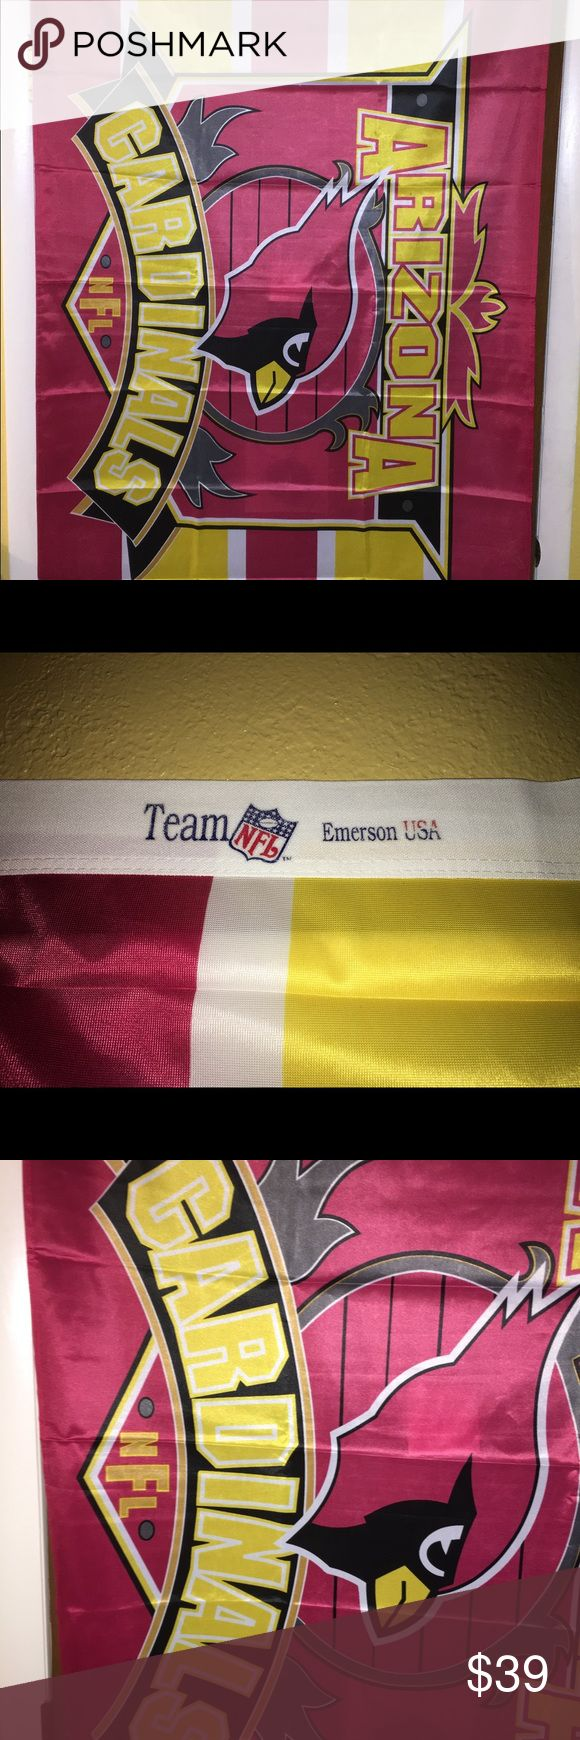 Arizona Cardinals team flag / banner 3'x5' NIP For sale is a brand new, in the package, Arizona Cardinals, 3'x5' team flag / banner.   Item is multi colored, looks amazing.   If you have any questions or would like additional photos please feel free to ask NFL Accessories